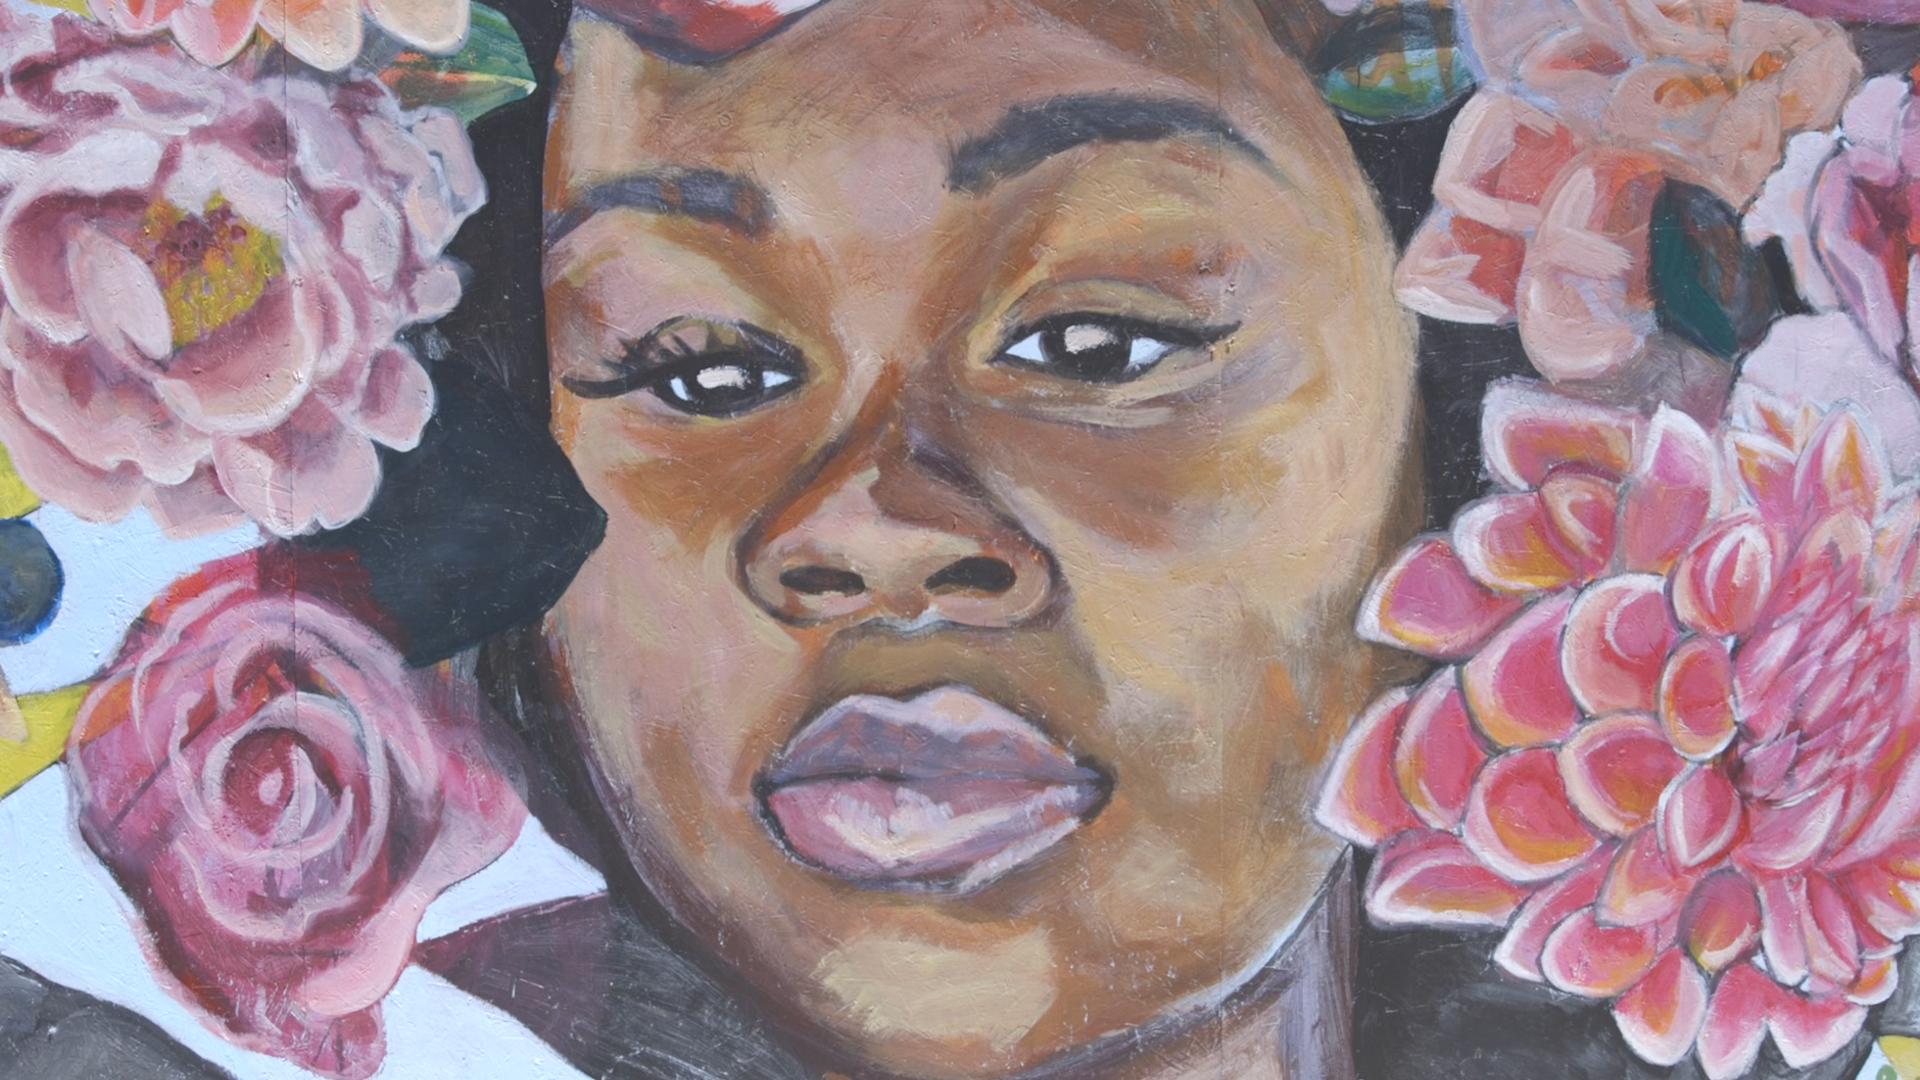 Oakland Youth Organization The People S Conservatory Paints Mural In Honor Of Breonna Taylor Abc7 Los Angeles